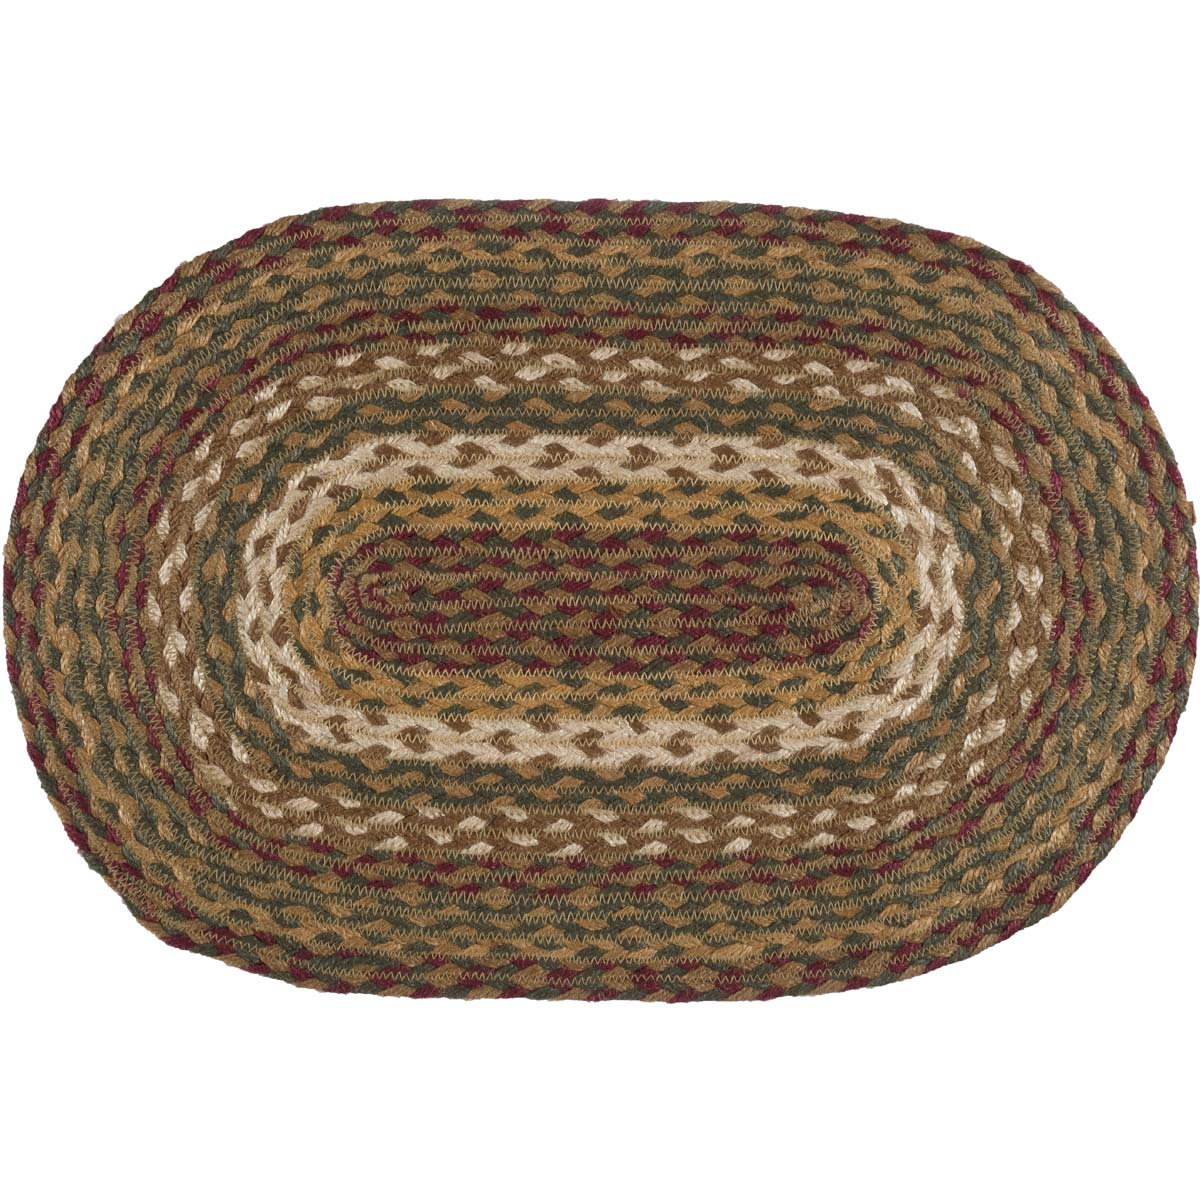 Tea-Cabin-Jute-Placemat-Set-of-6-12x18-image-3